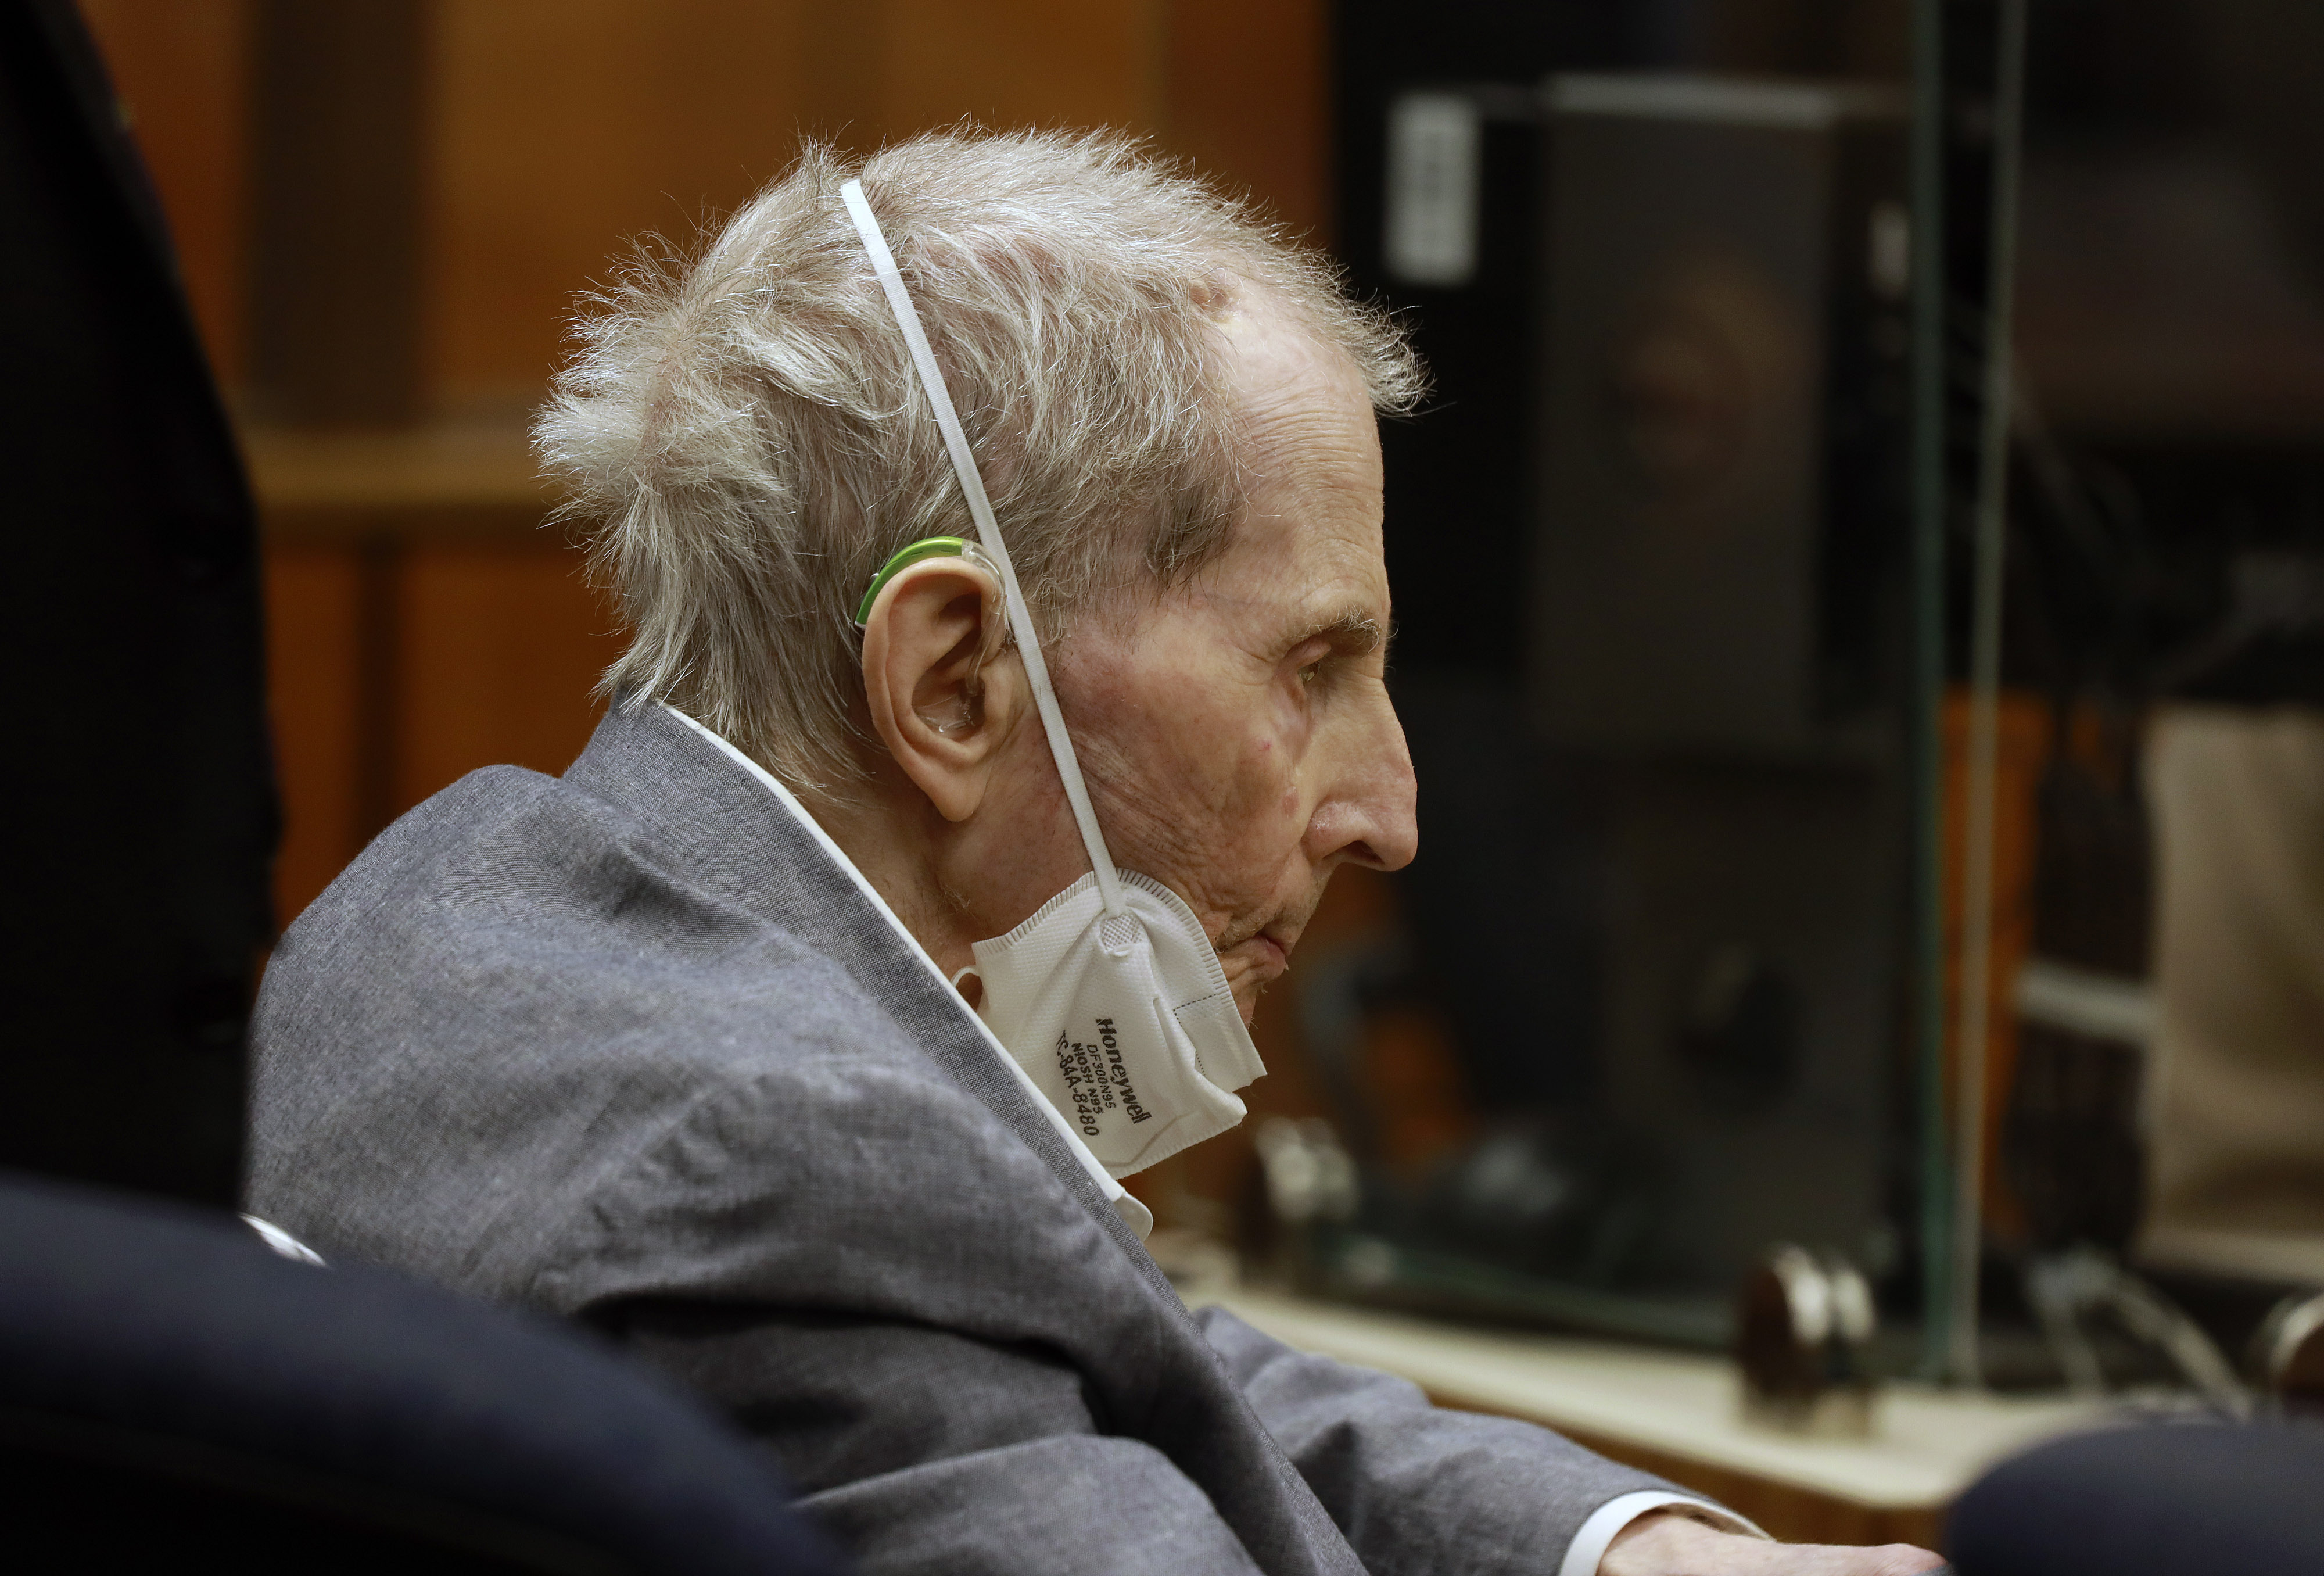 Robert Durst Found Guilty Of Murder By L.A. Jury; 'The Jinx' Subject Faces Up To 25 Years Behind Bars